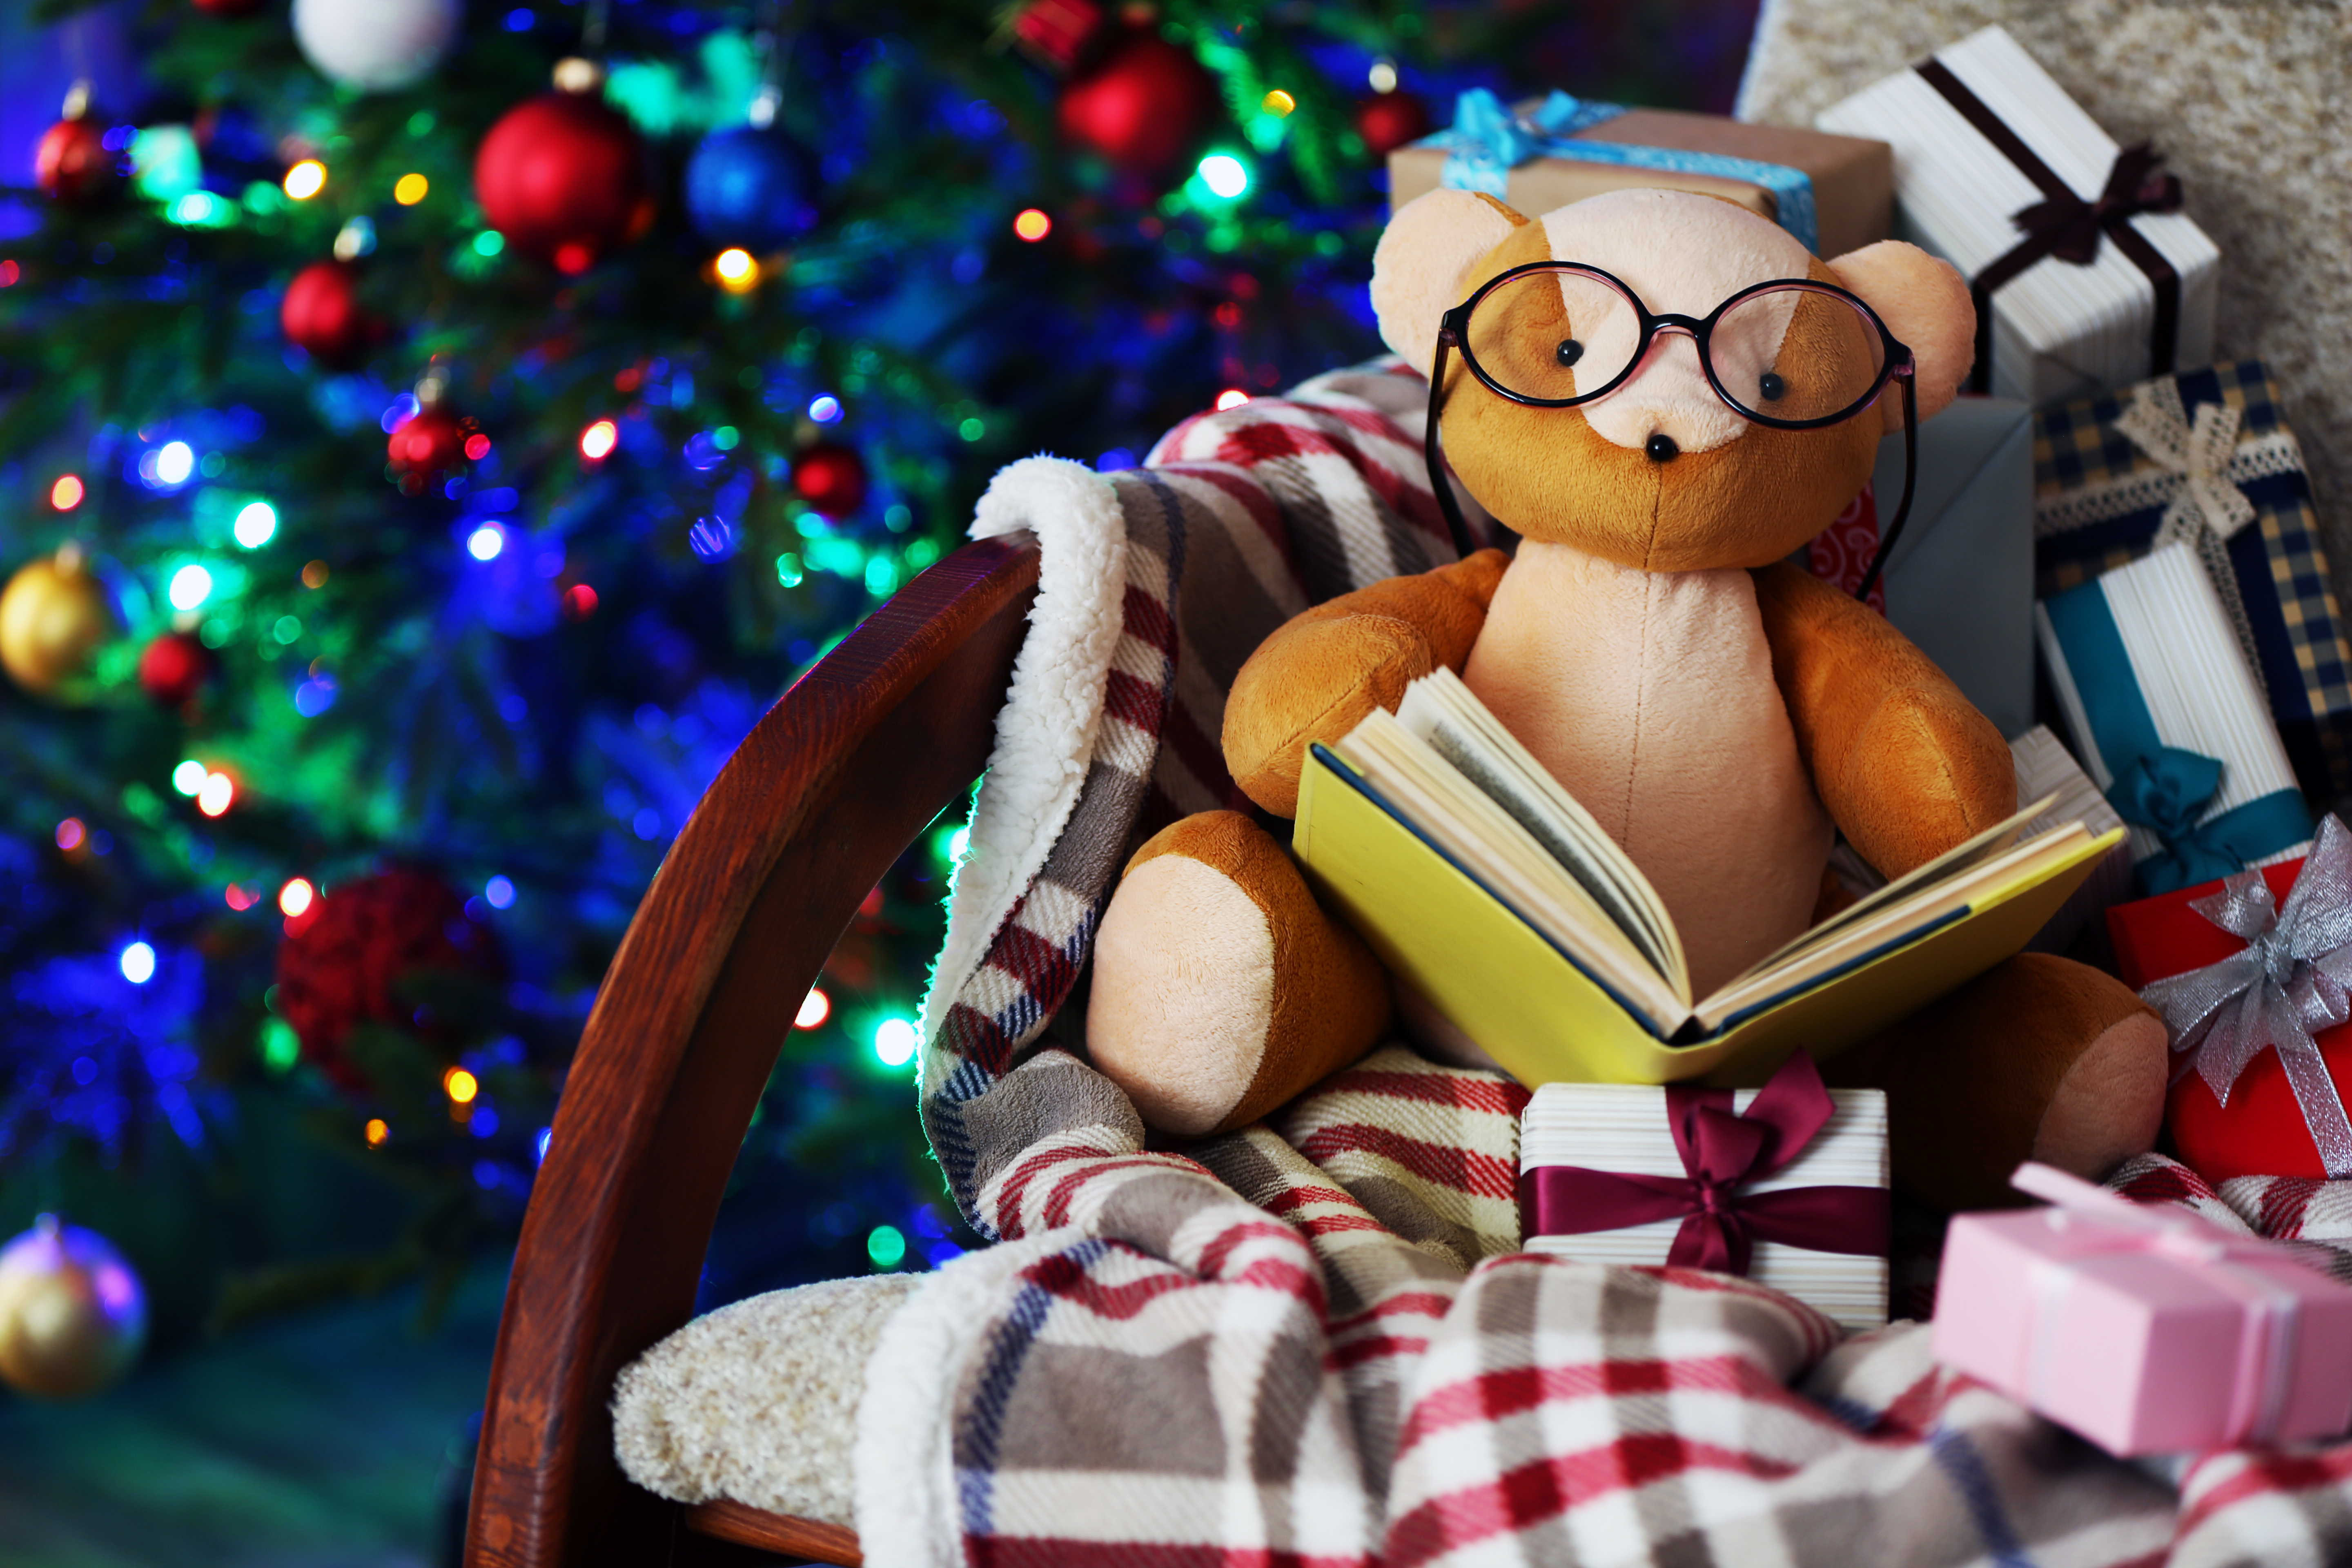 Teddy bear with book and gift boxes in rocking chair